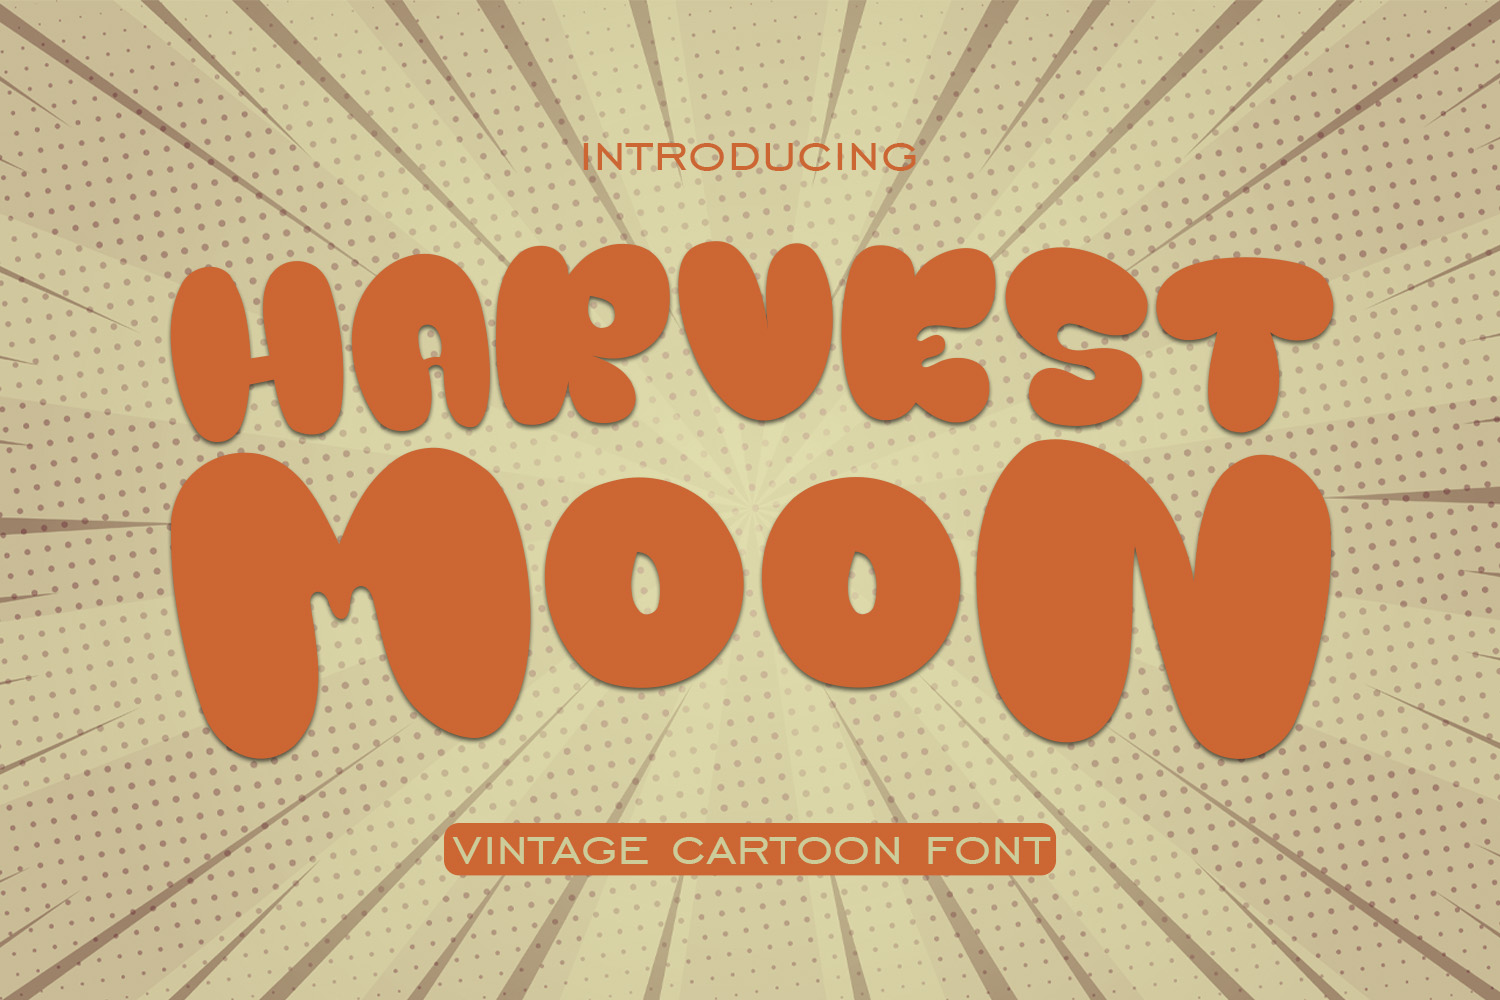 Harvest Moon Font By Jujungag Creative Fabrica